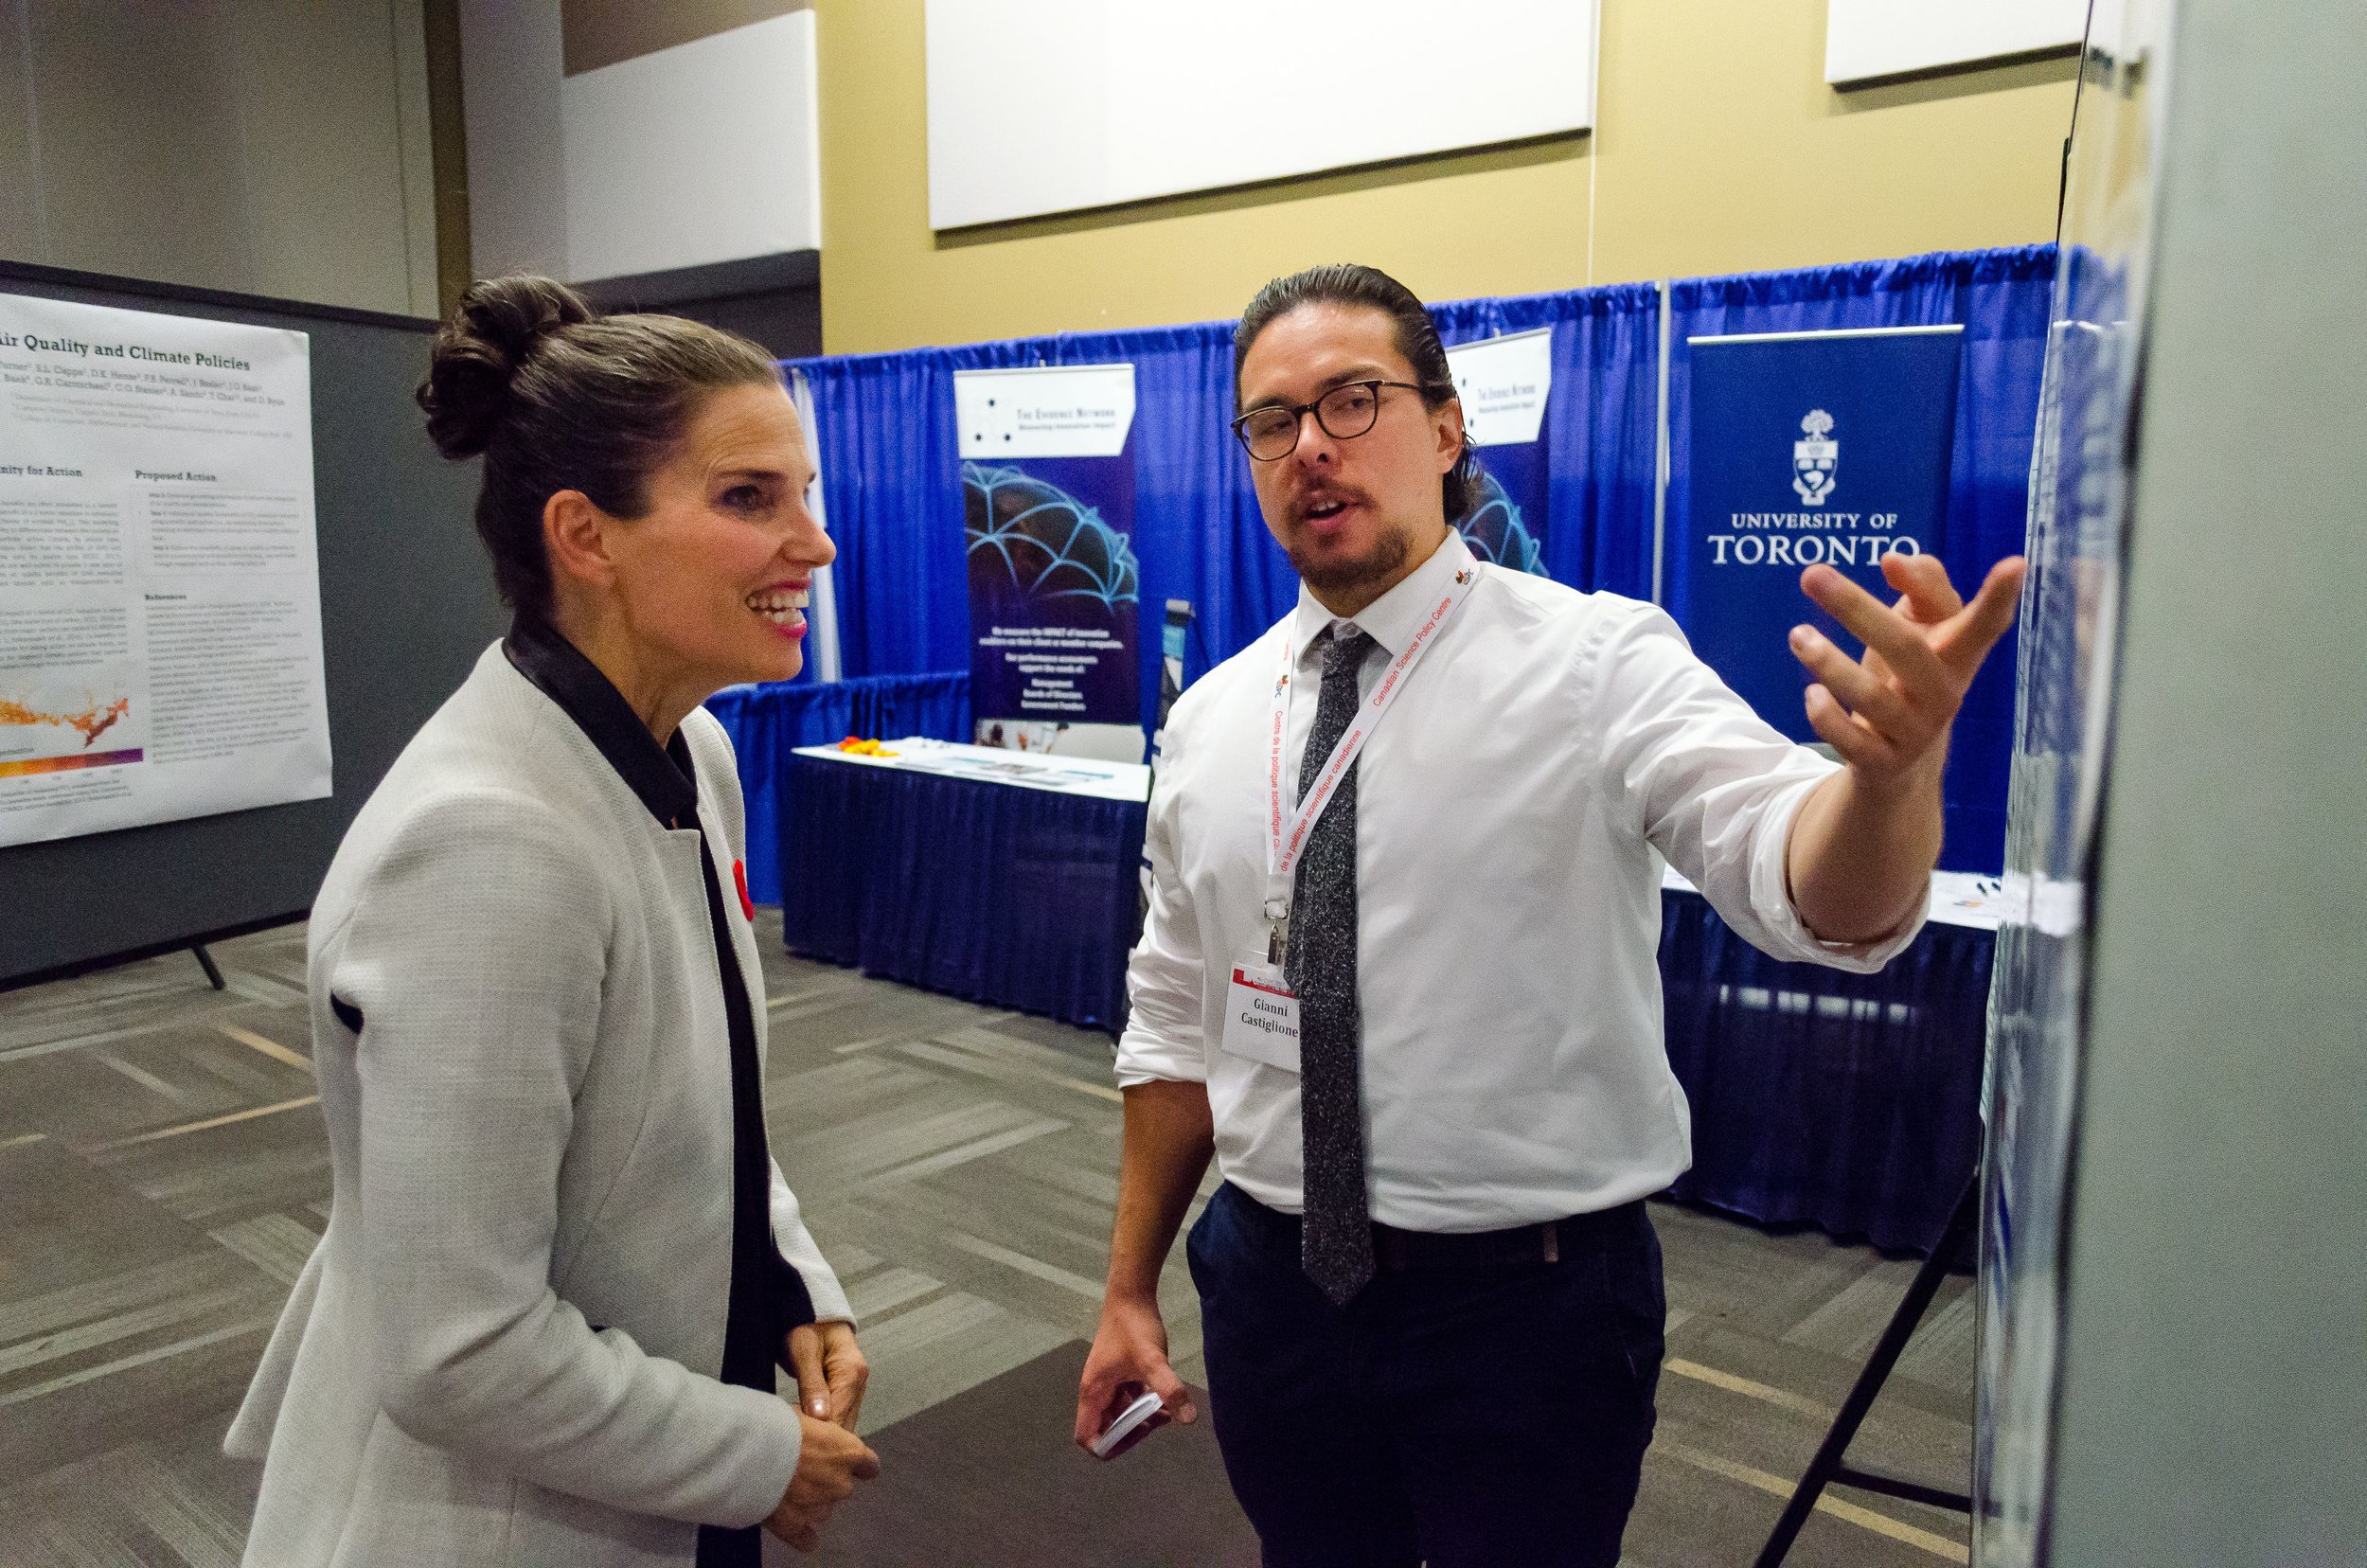 The Honourable Kirsty Duncan, Canadian Minister of Science, and eParliament Director, Dr. Gianni M. Castiglione, discuss eParliament at the  9th Canadian Science Policy Conference  in Ottawa, Nov 2 2017.